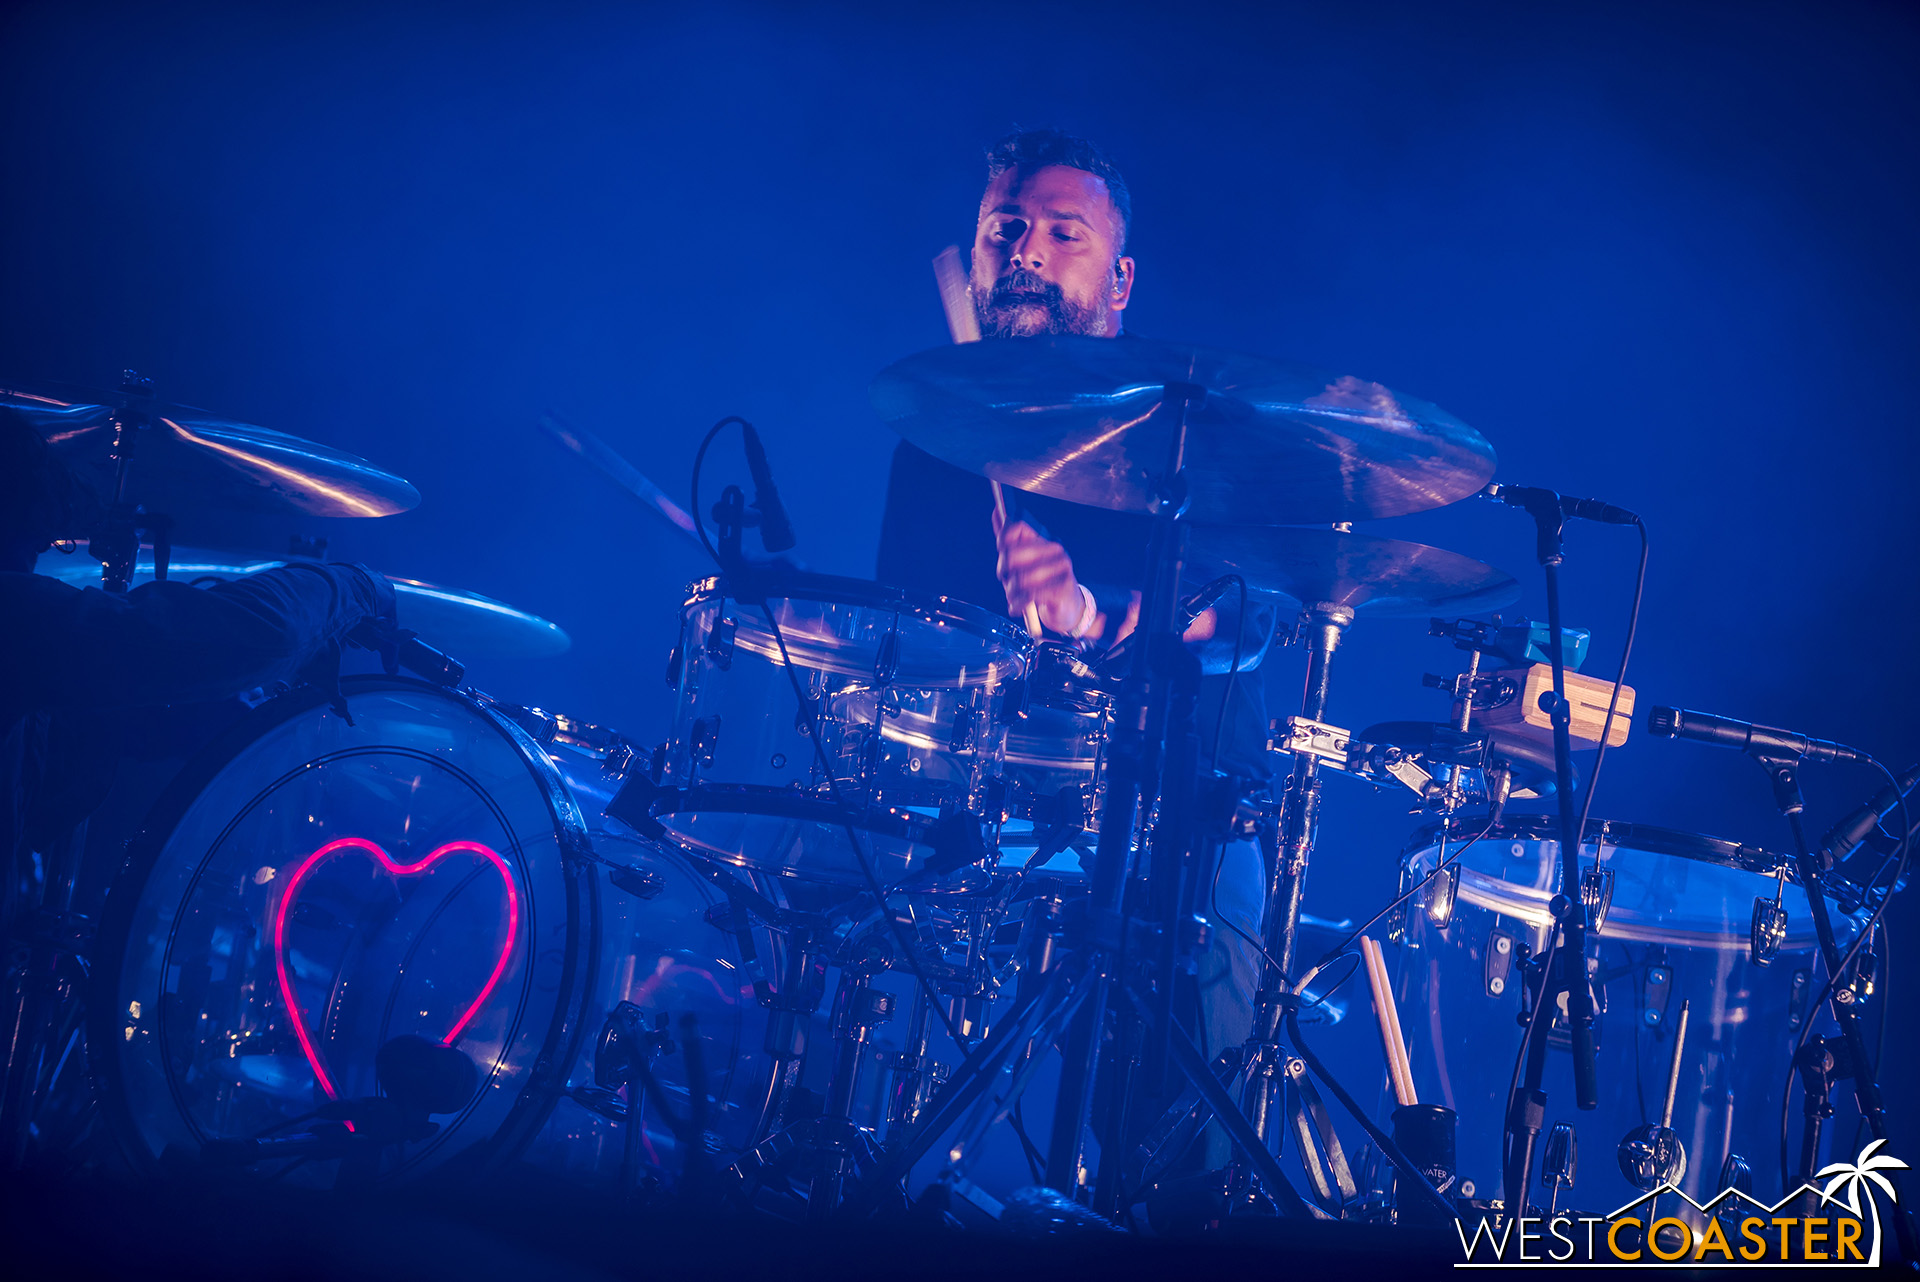 Thomas Hedlund on drums for Phoenix.